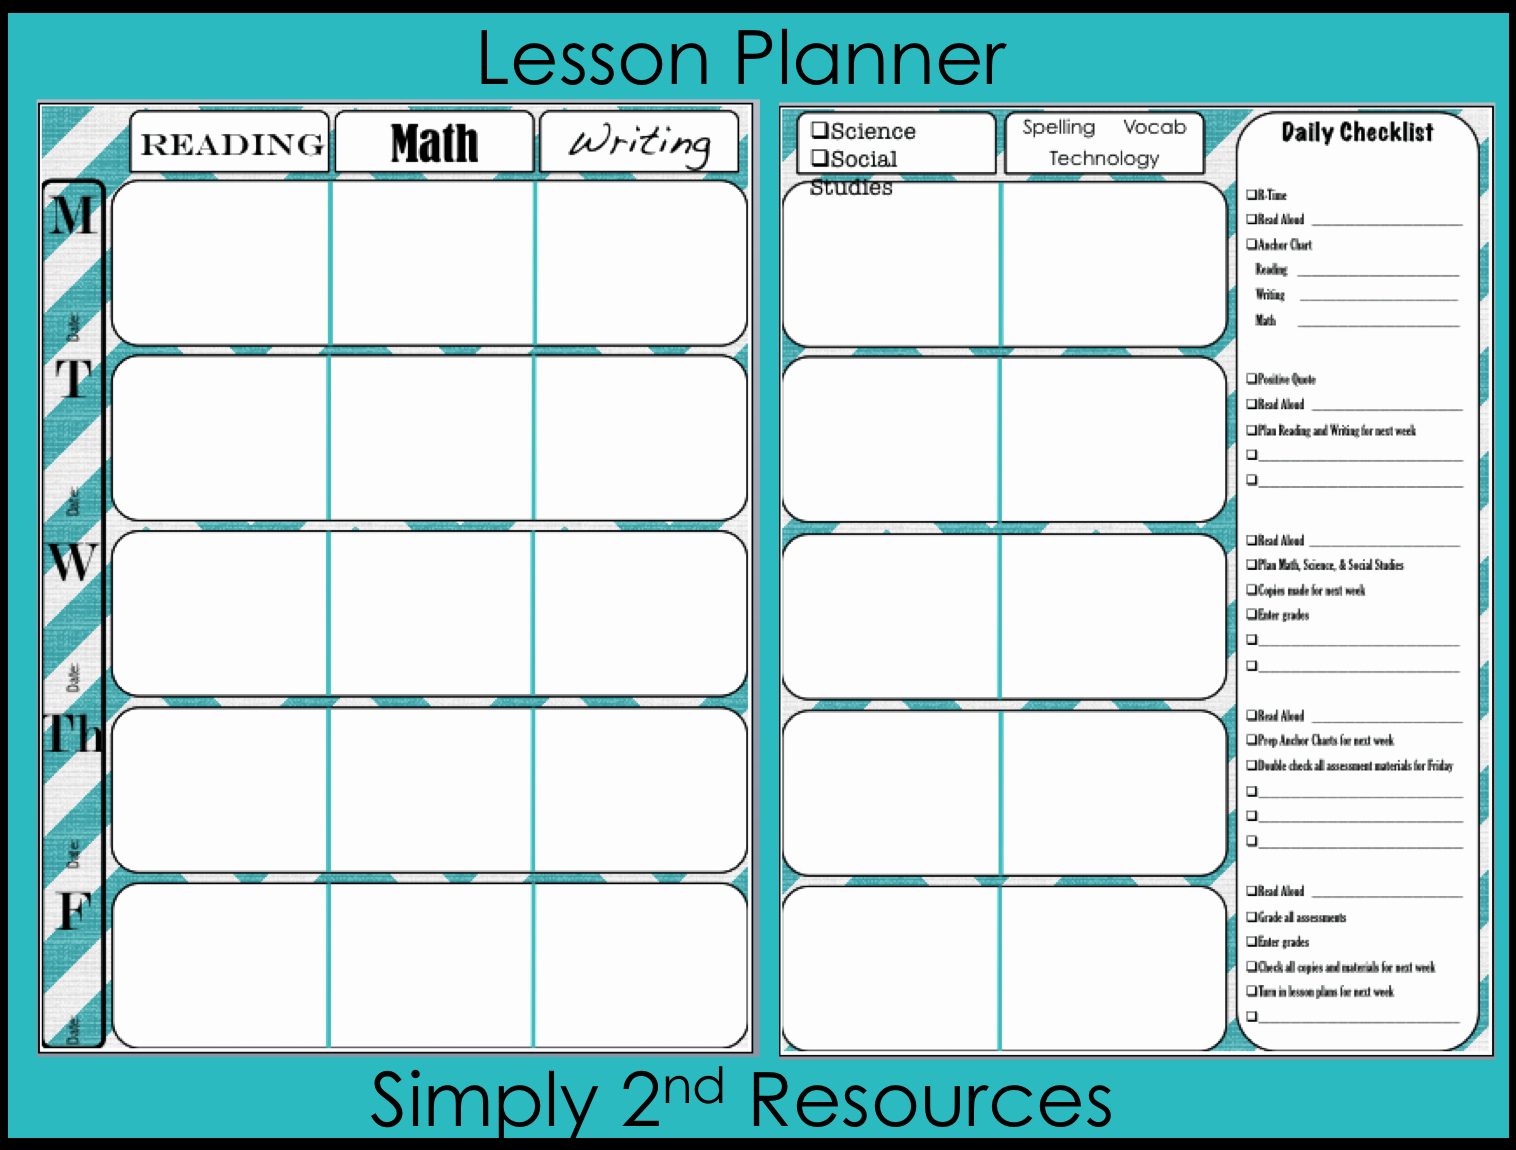 Weekly Planning Template for Teachers Lovely Simply 2nd Resources Throwback Thursday Linky